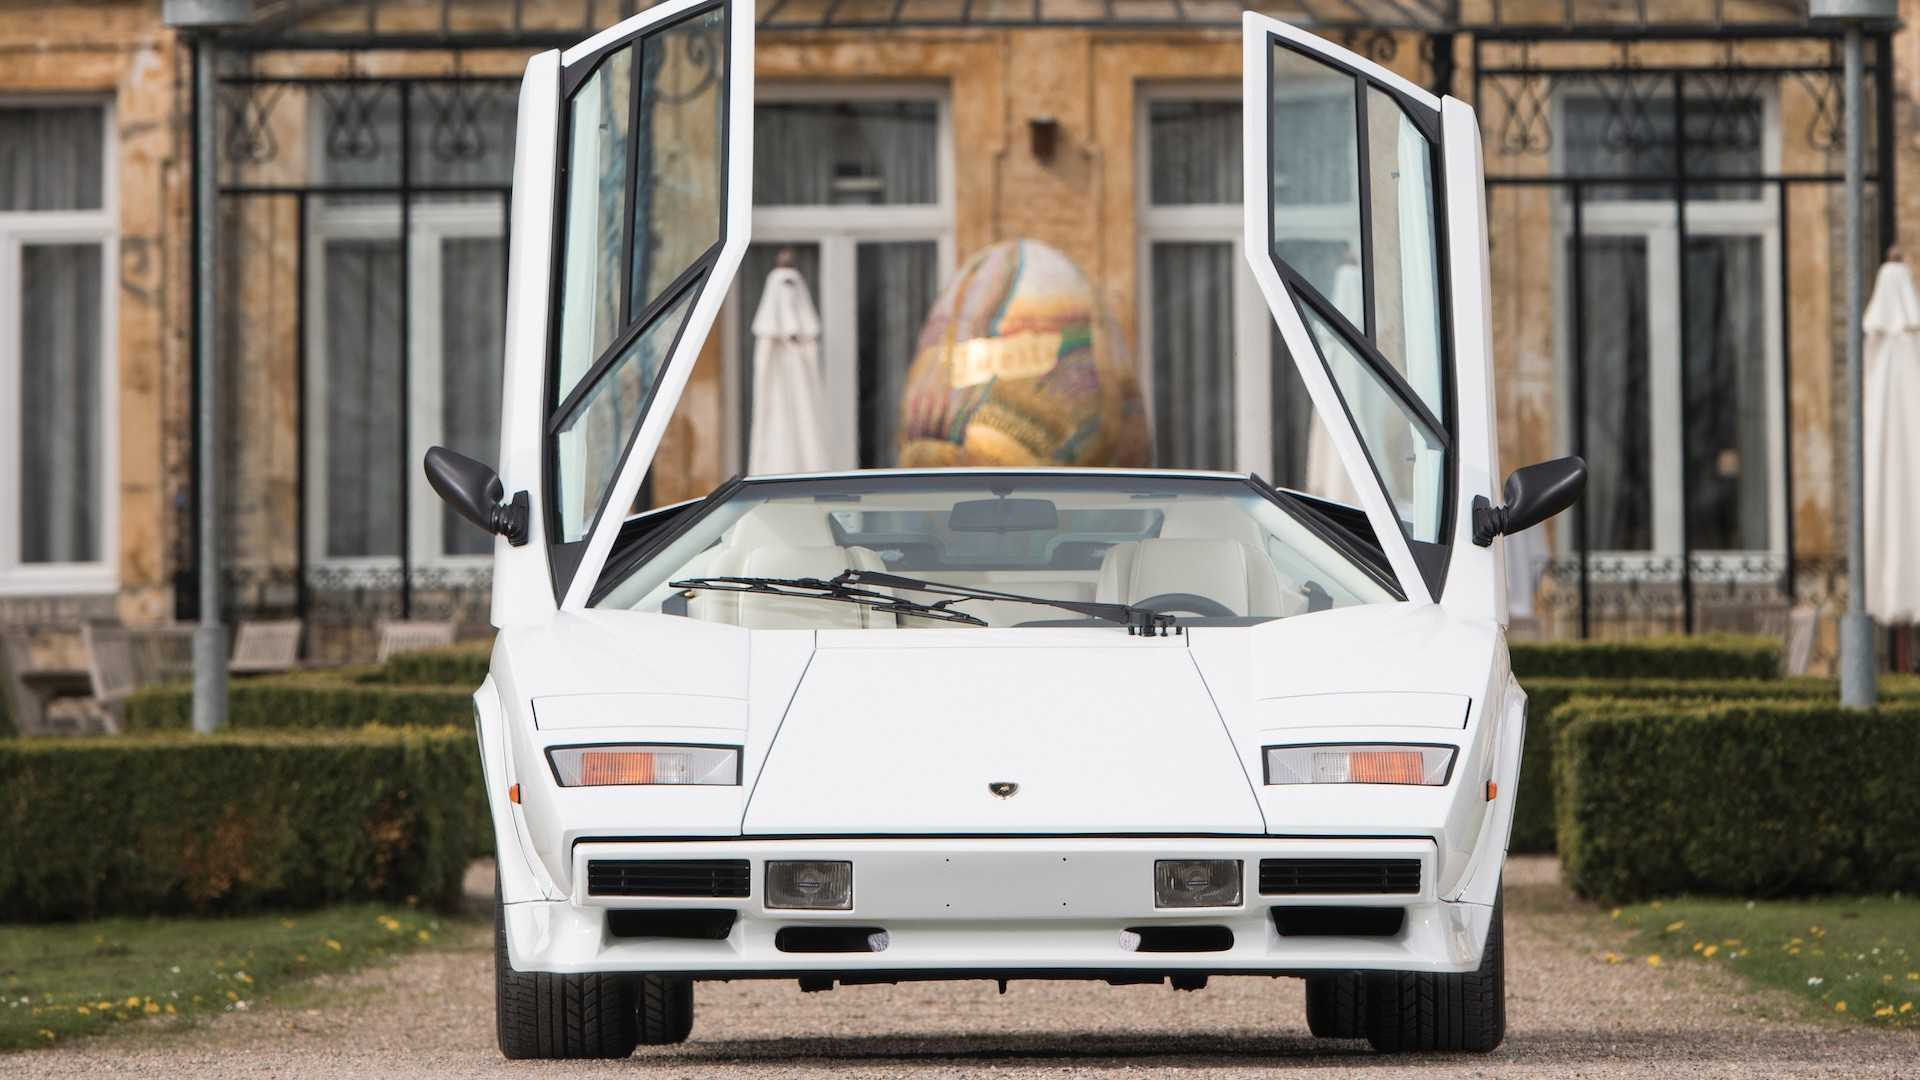 Gold Plated Lamborghini Countach Brings The Bling To Auction